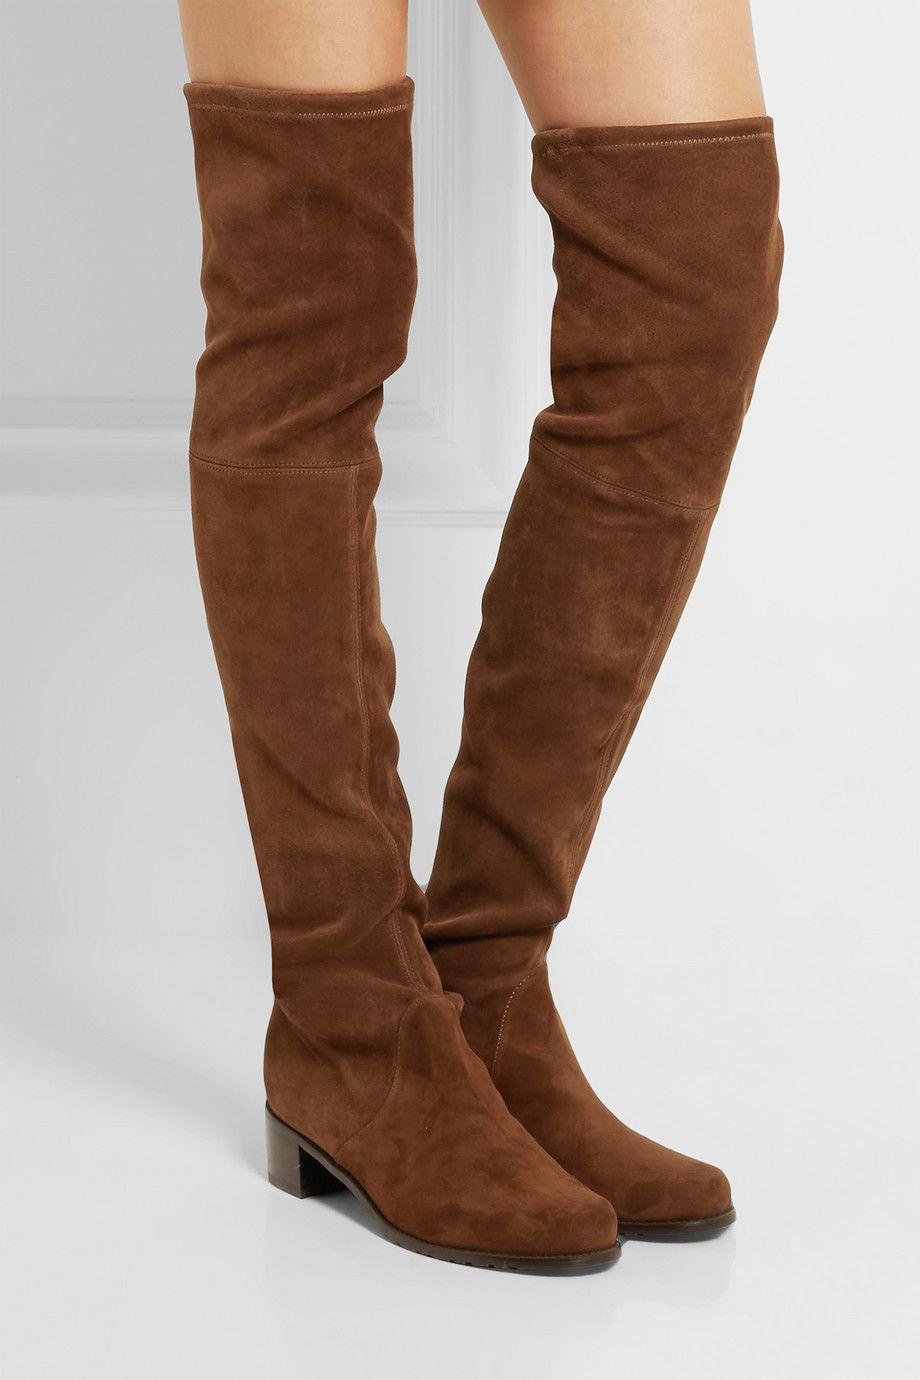 $795 Stuart Weitzman Midland Over Knee Walnut Boot Thigh High Booties 7.5